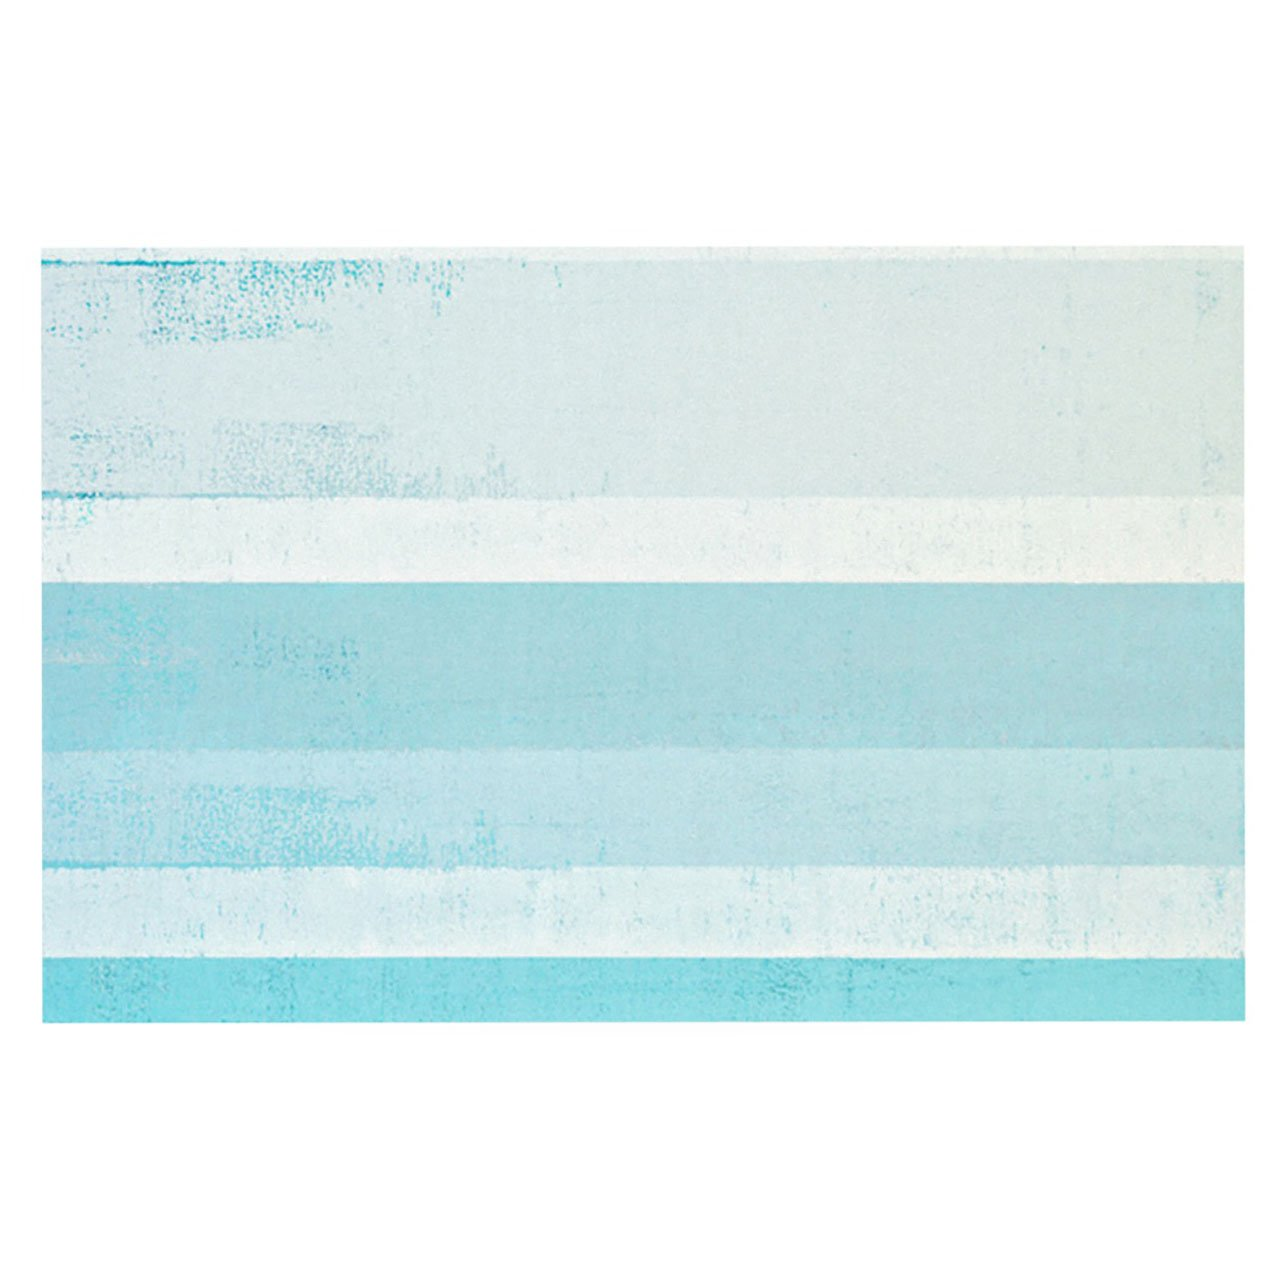 Kess InHouse  CarolLynn Tice ''Waves'' Blue Aqua Pet Bowl Placemat for Dog and Cat Feeding Mat, 18-Inch by 13-Inch